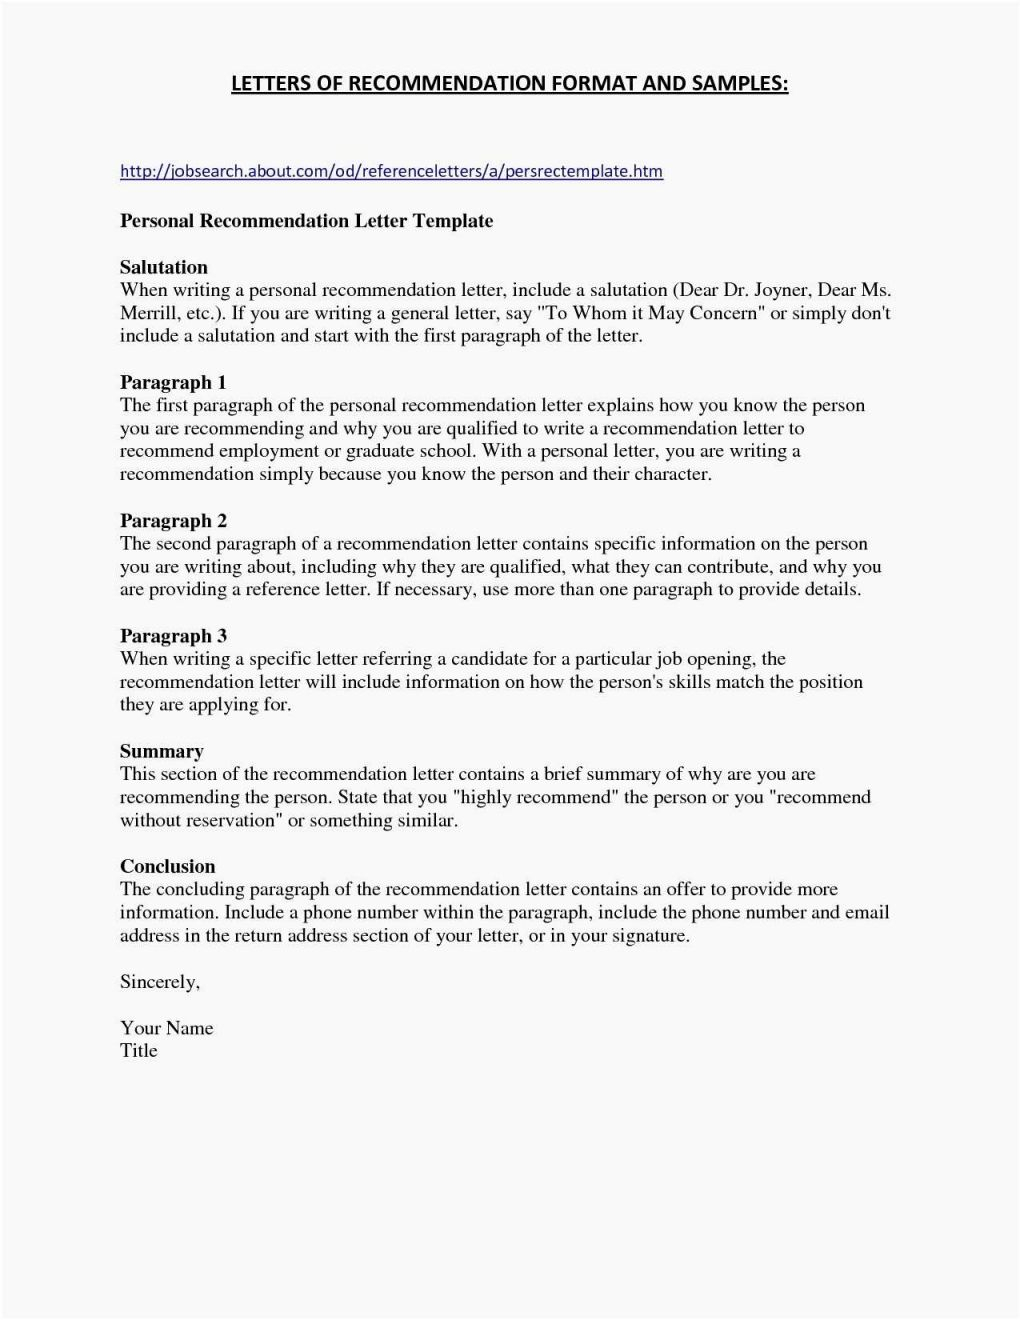 Back to School Letter Template - top Letter to Hoa Template Qy74 – Documentaries for Change